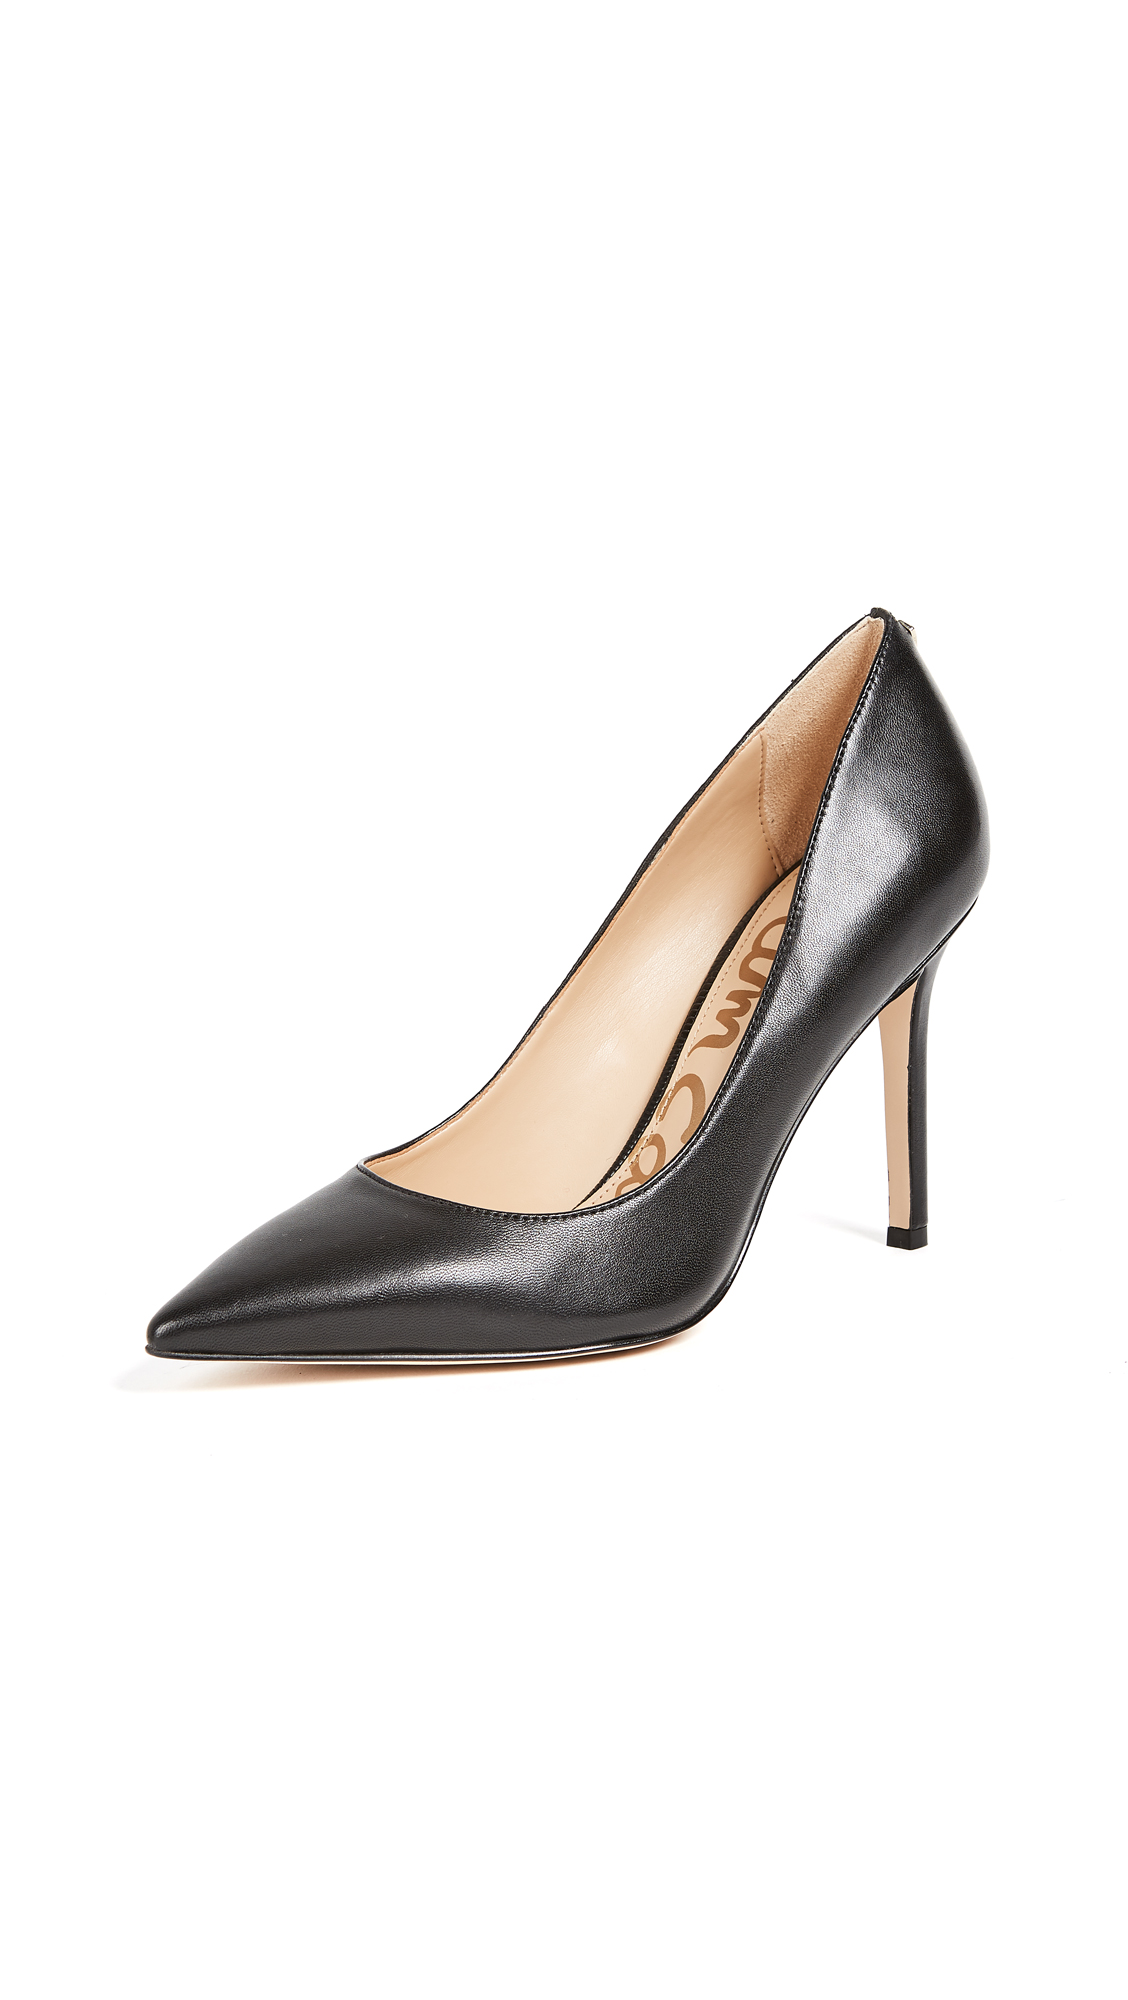 Sam Edelman Hazel Pumps - Black